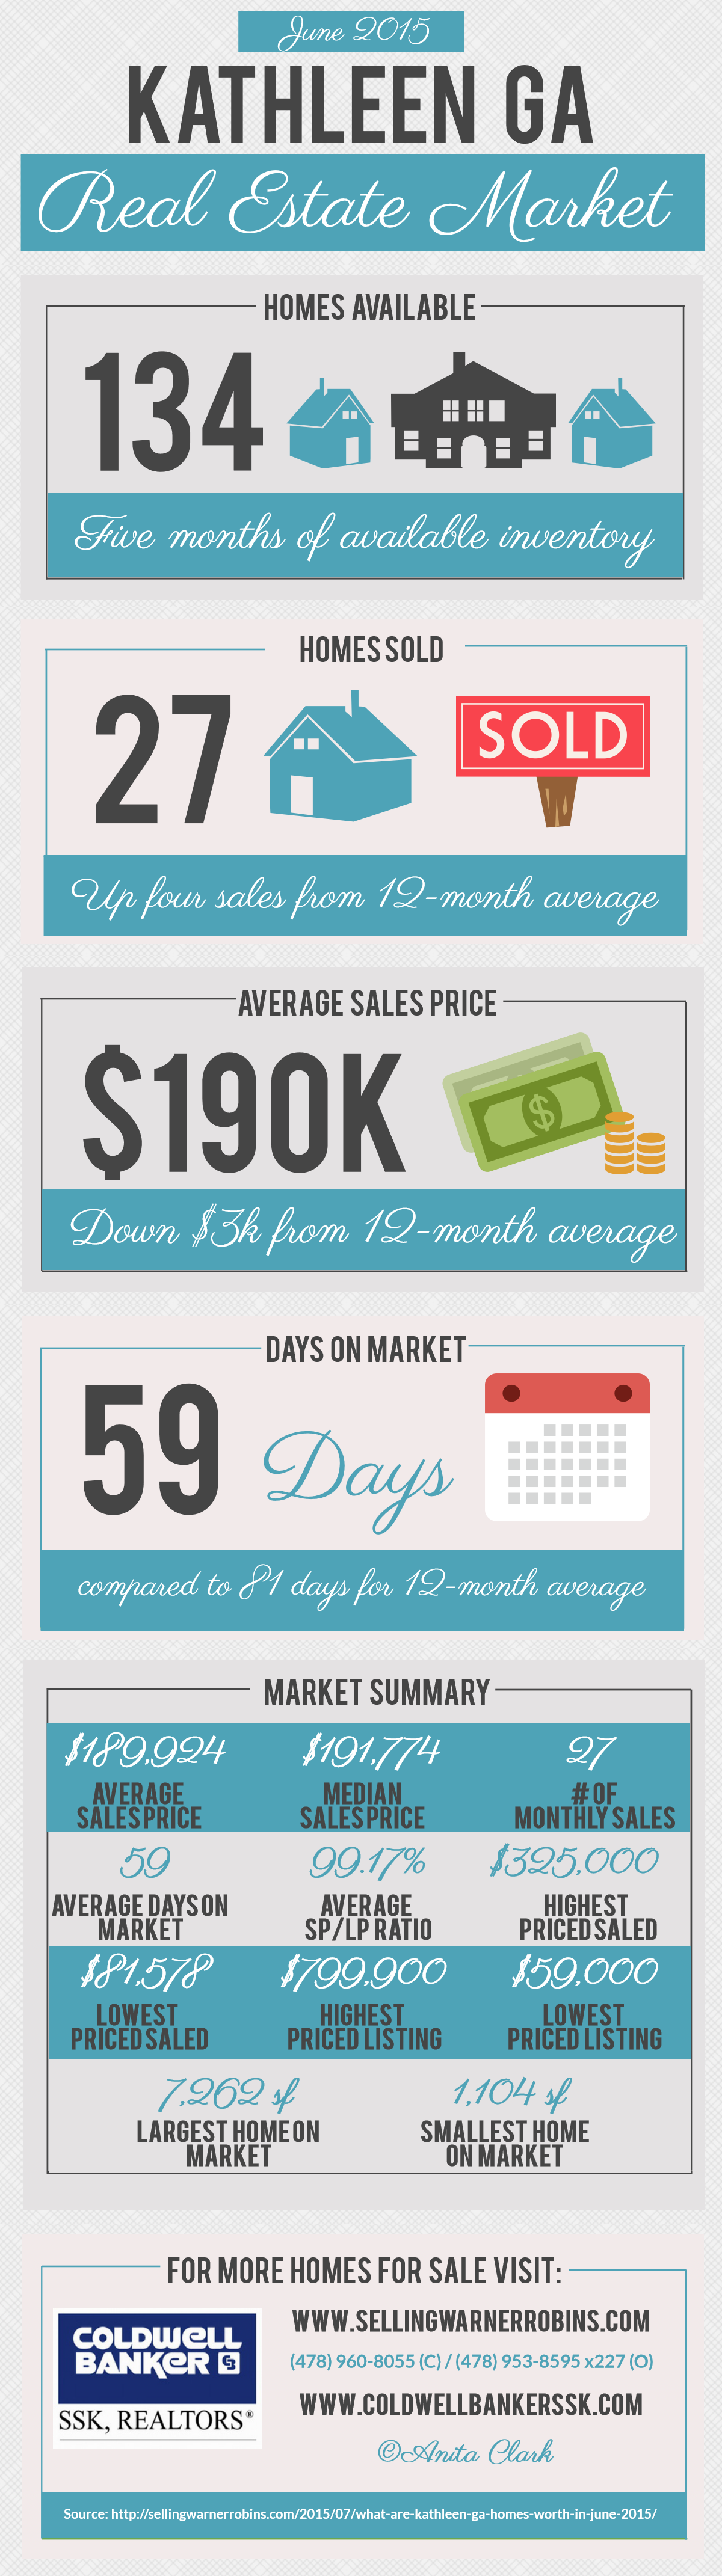 real estate market infographic